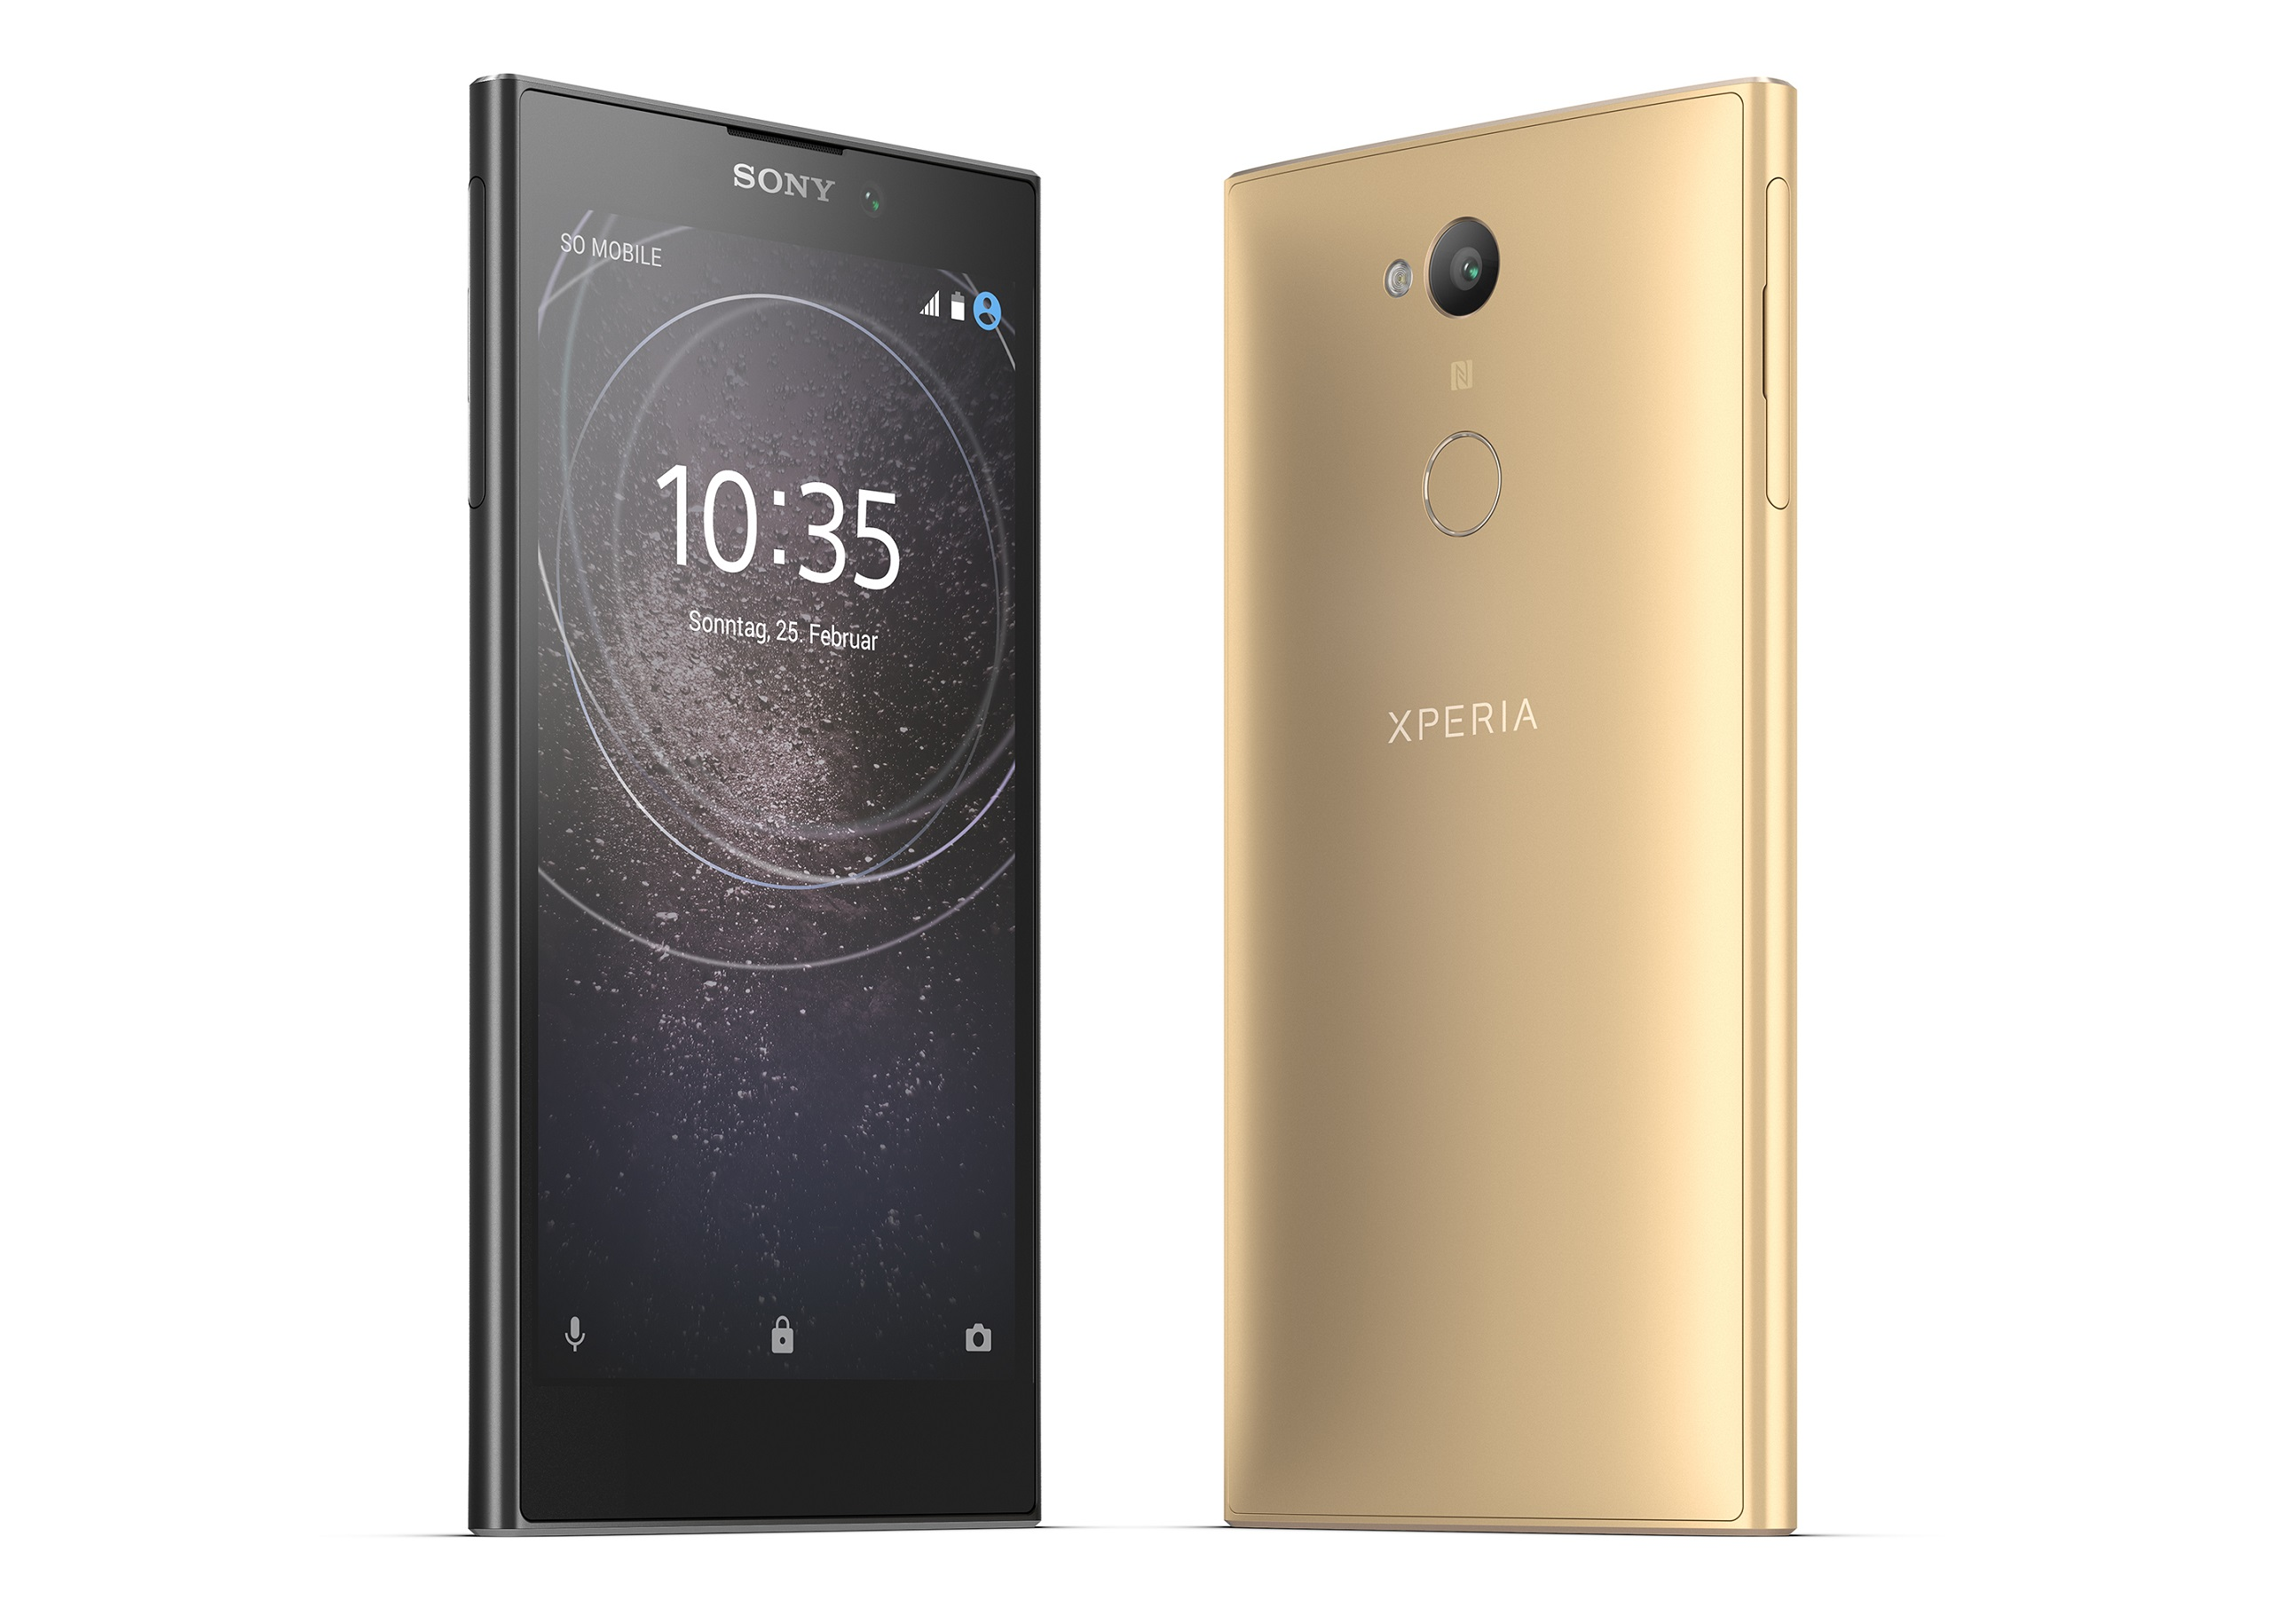 Sony Xperia L2 Smartphone Review - NotebookCheck net Reviews